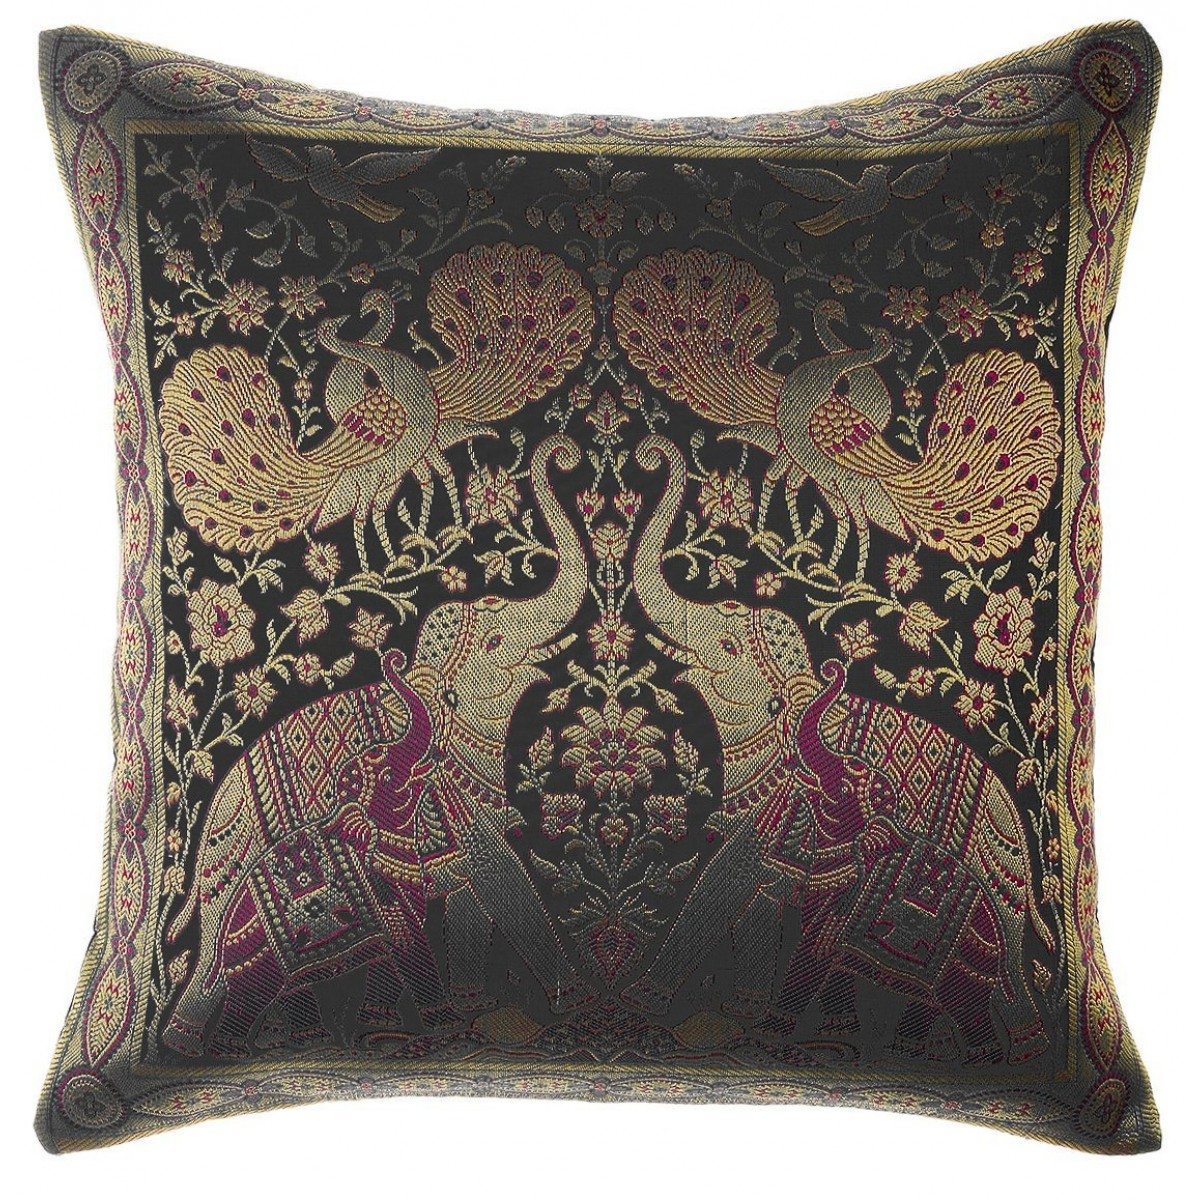 Avarada India Style Elephant Peacock Throw Pillow Cover Decorative Sofa Couch Cushion Cover Zippered 16x16 Inch 40x40 Cm Black